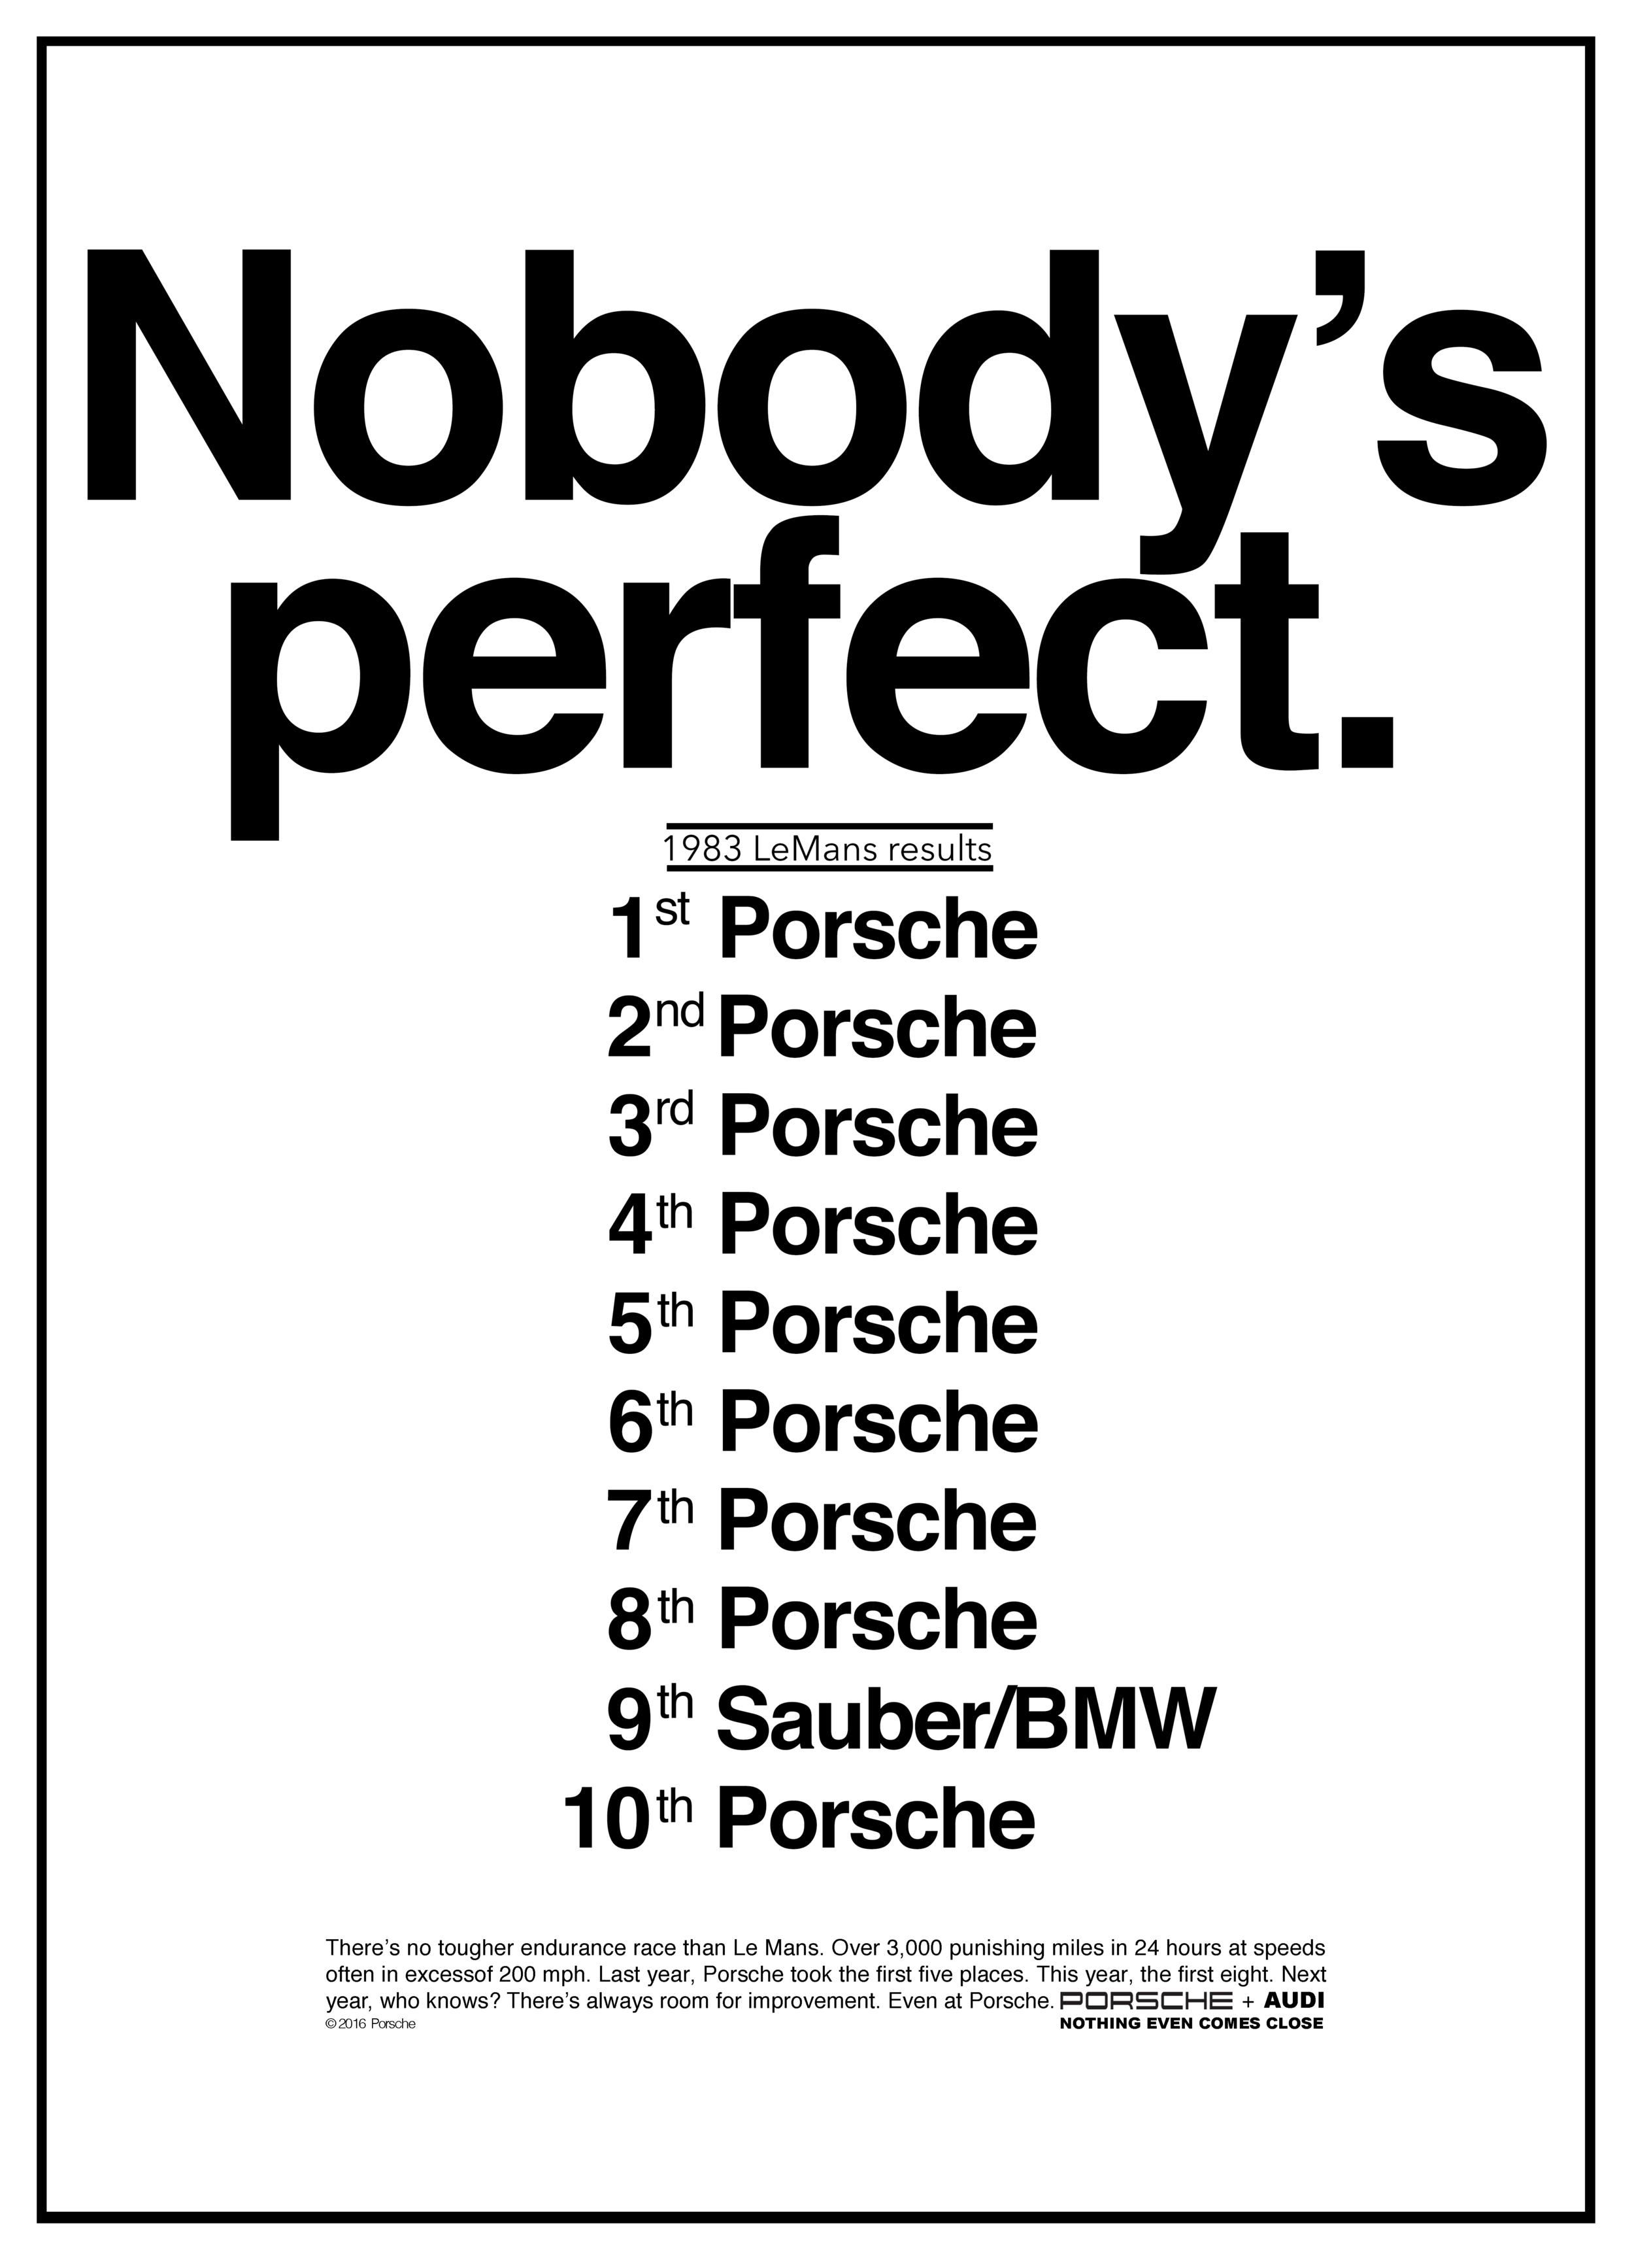 Vision, product and cultural relevance collide in this classic Porsche ad.